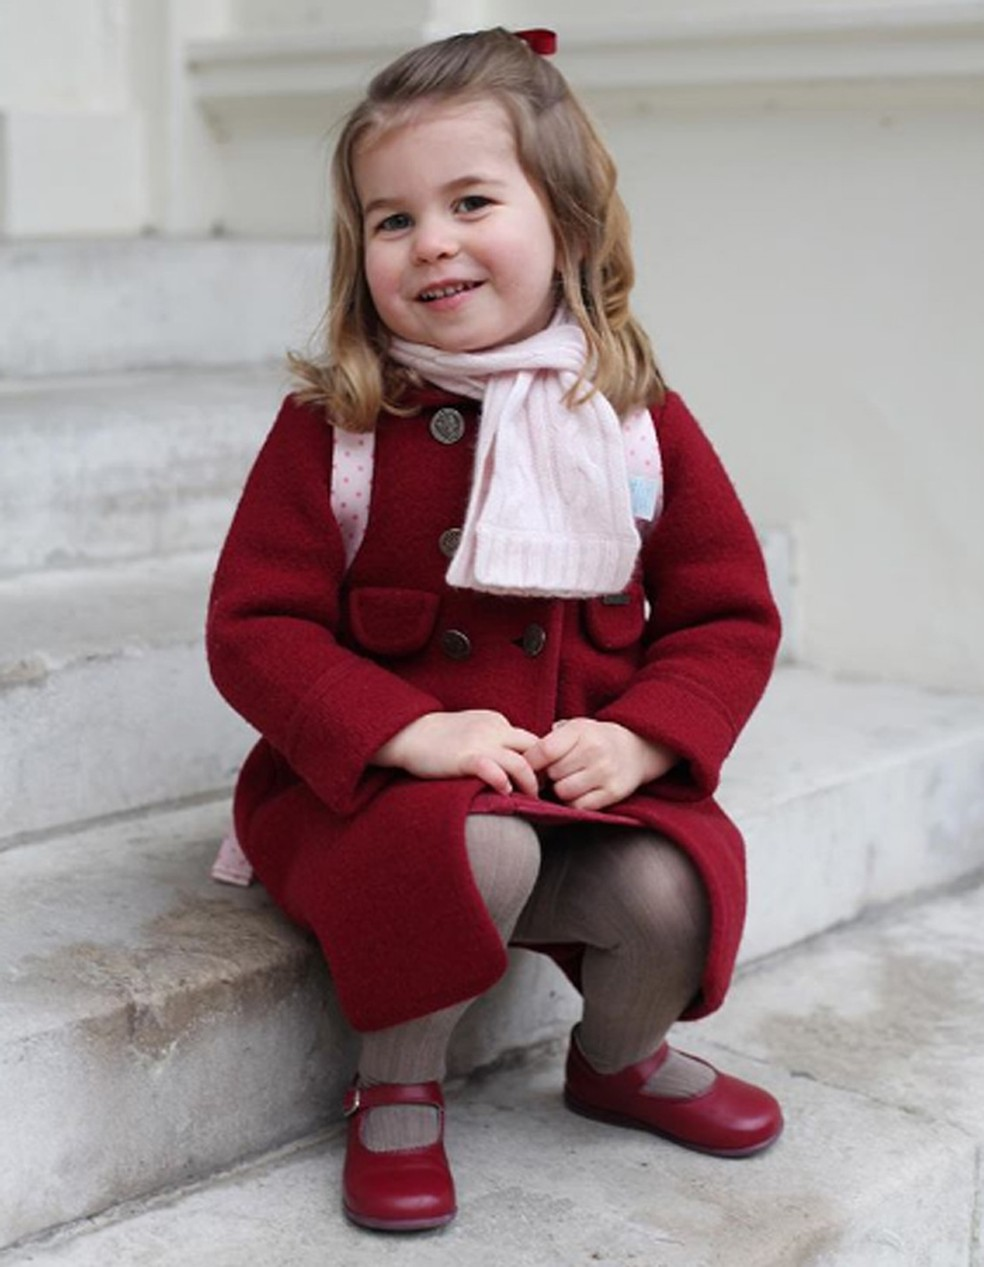 Antes de levar a princesa Charlotte para a escola, seus pais, o príncipe William e a duquesa de Cambridge Catherine Middleton, registraram a felicidade da pequena antes do início das aulas (Foto: Divulgação/Palácio Kensington)